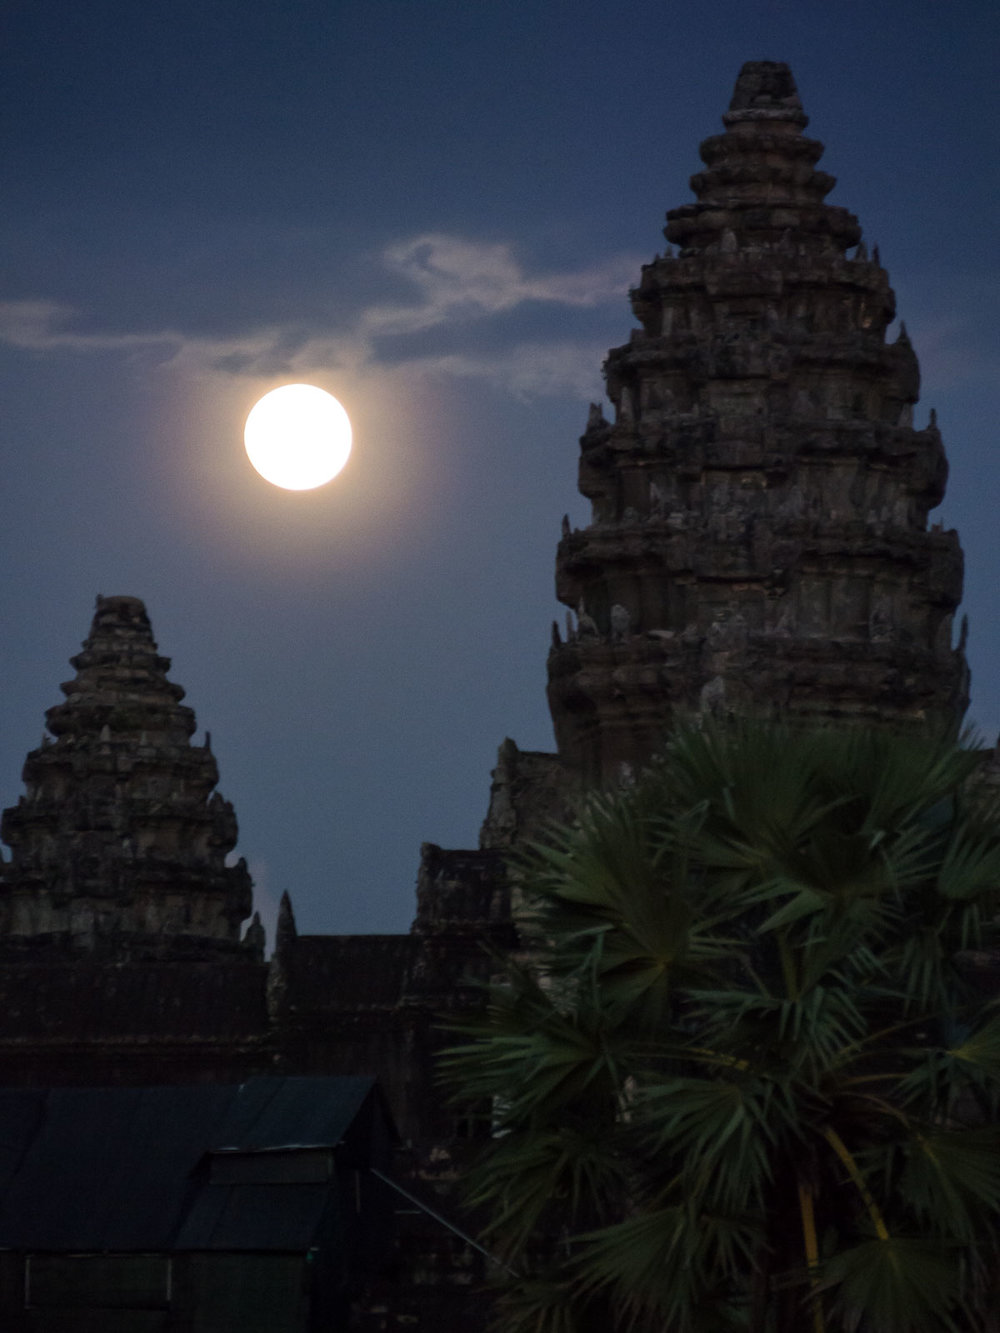 Full moon rising above Angkor Wat.  ©ashleycowie.com